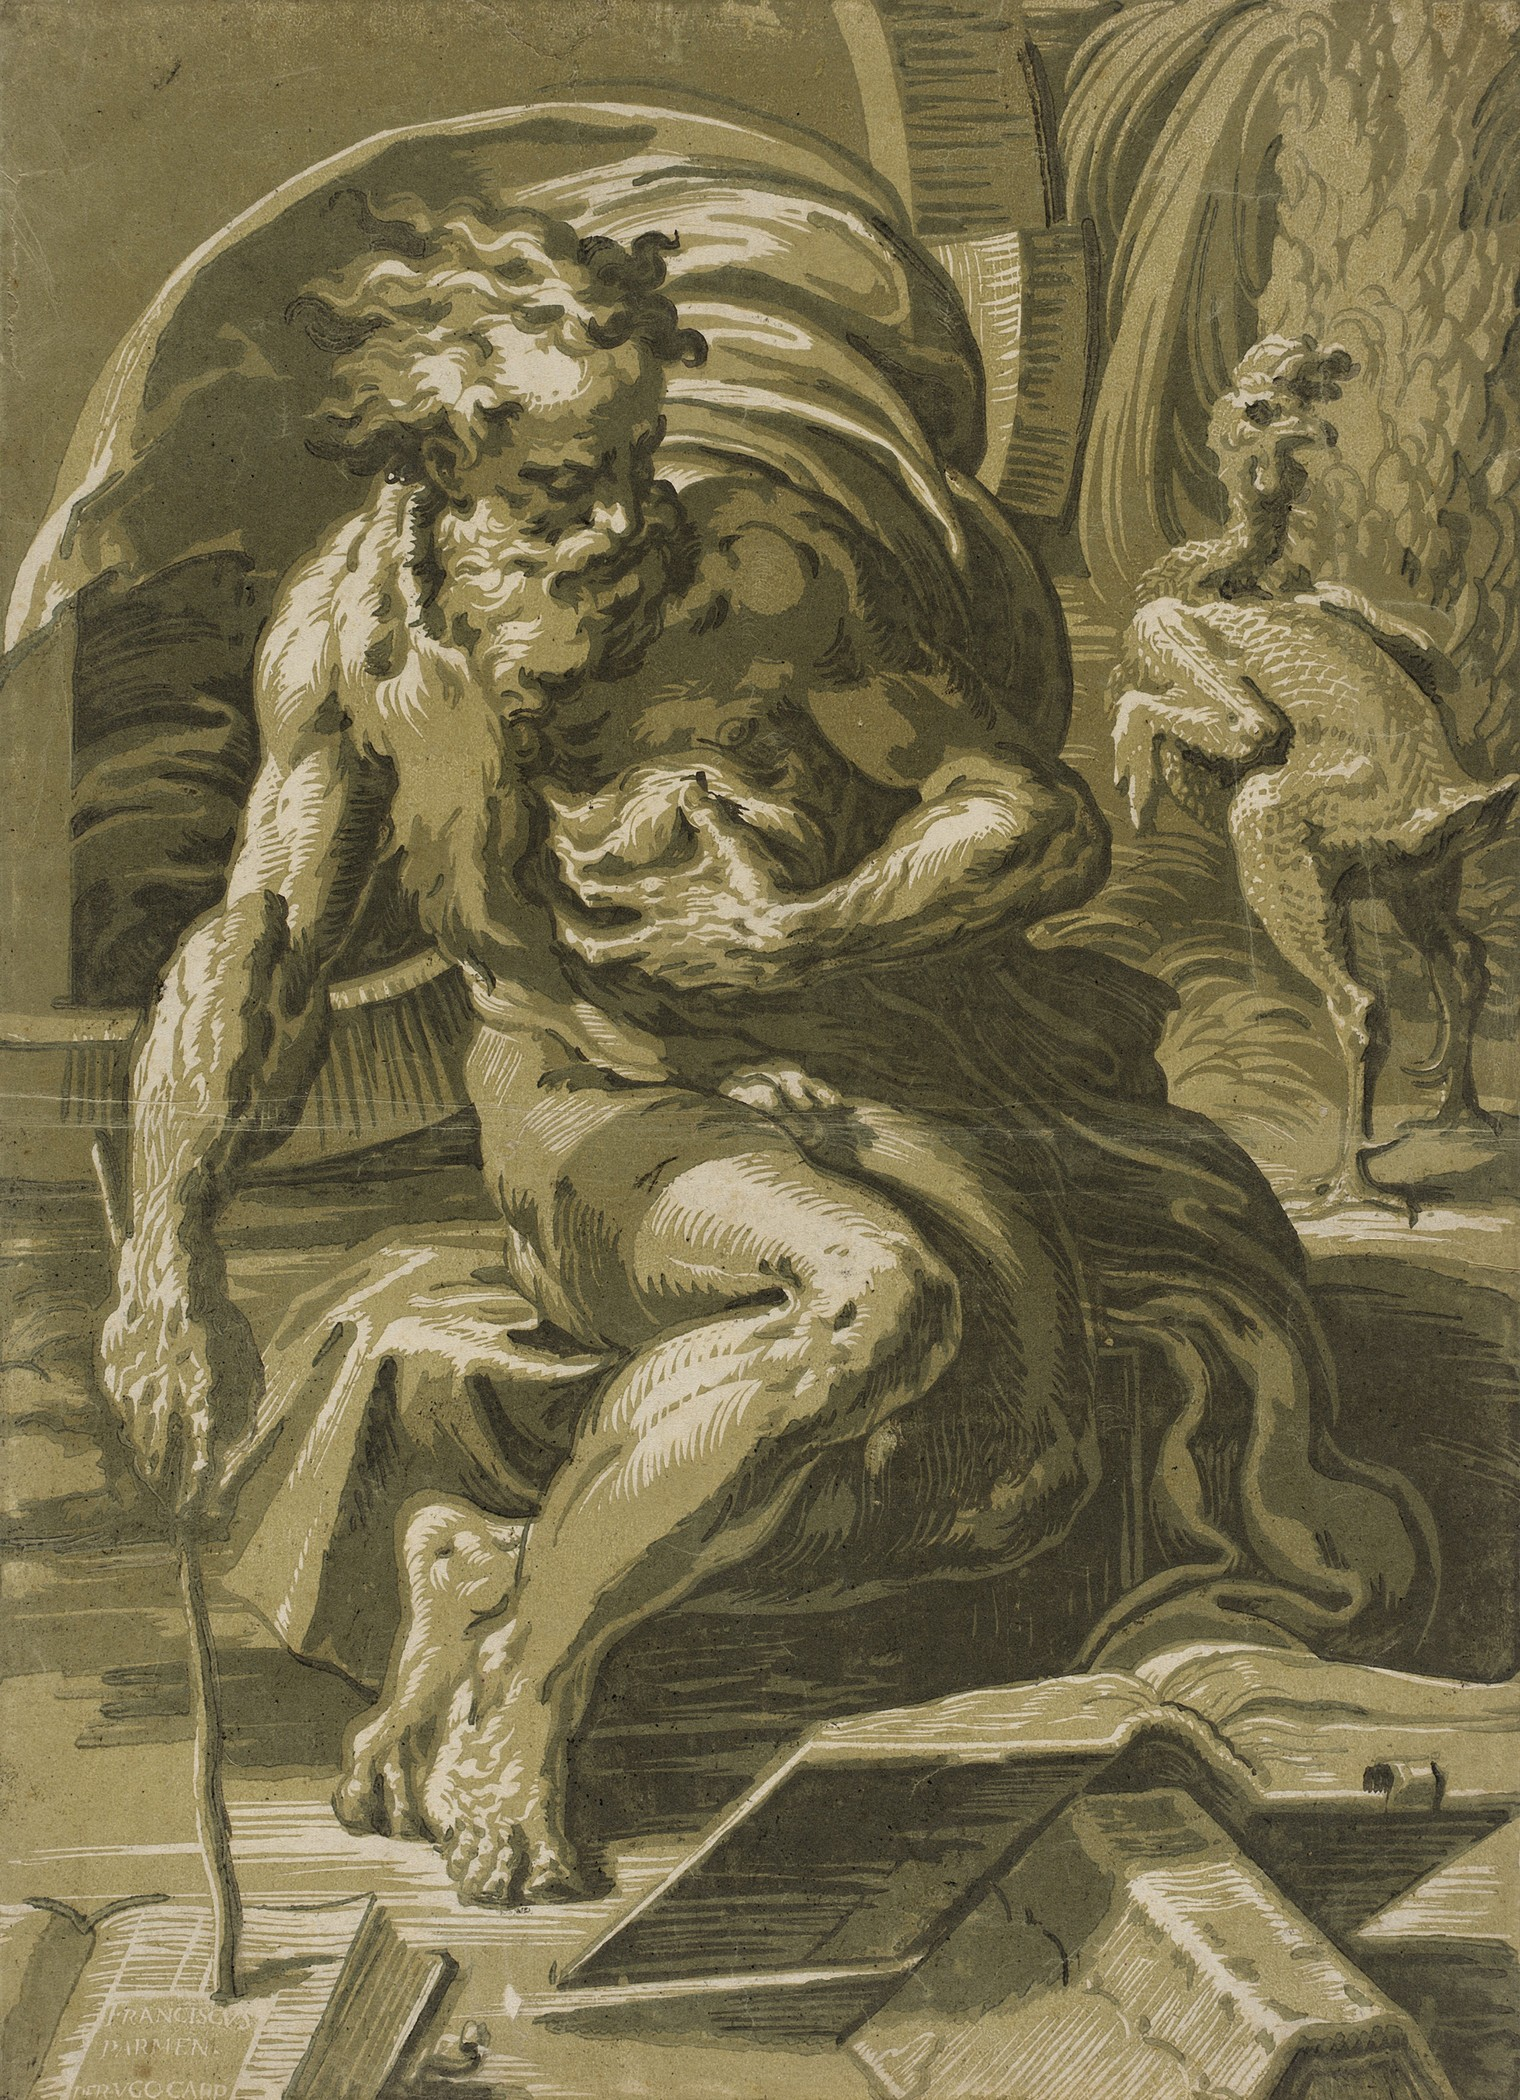 Image: Ugo da Carpi after Francesco Parmigianino, Diogenes, c. 1527